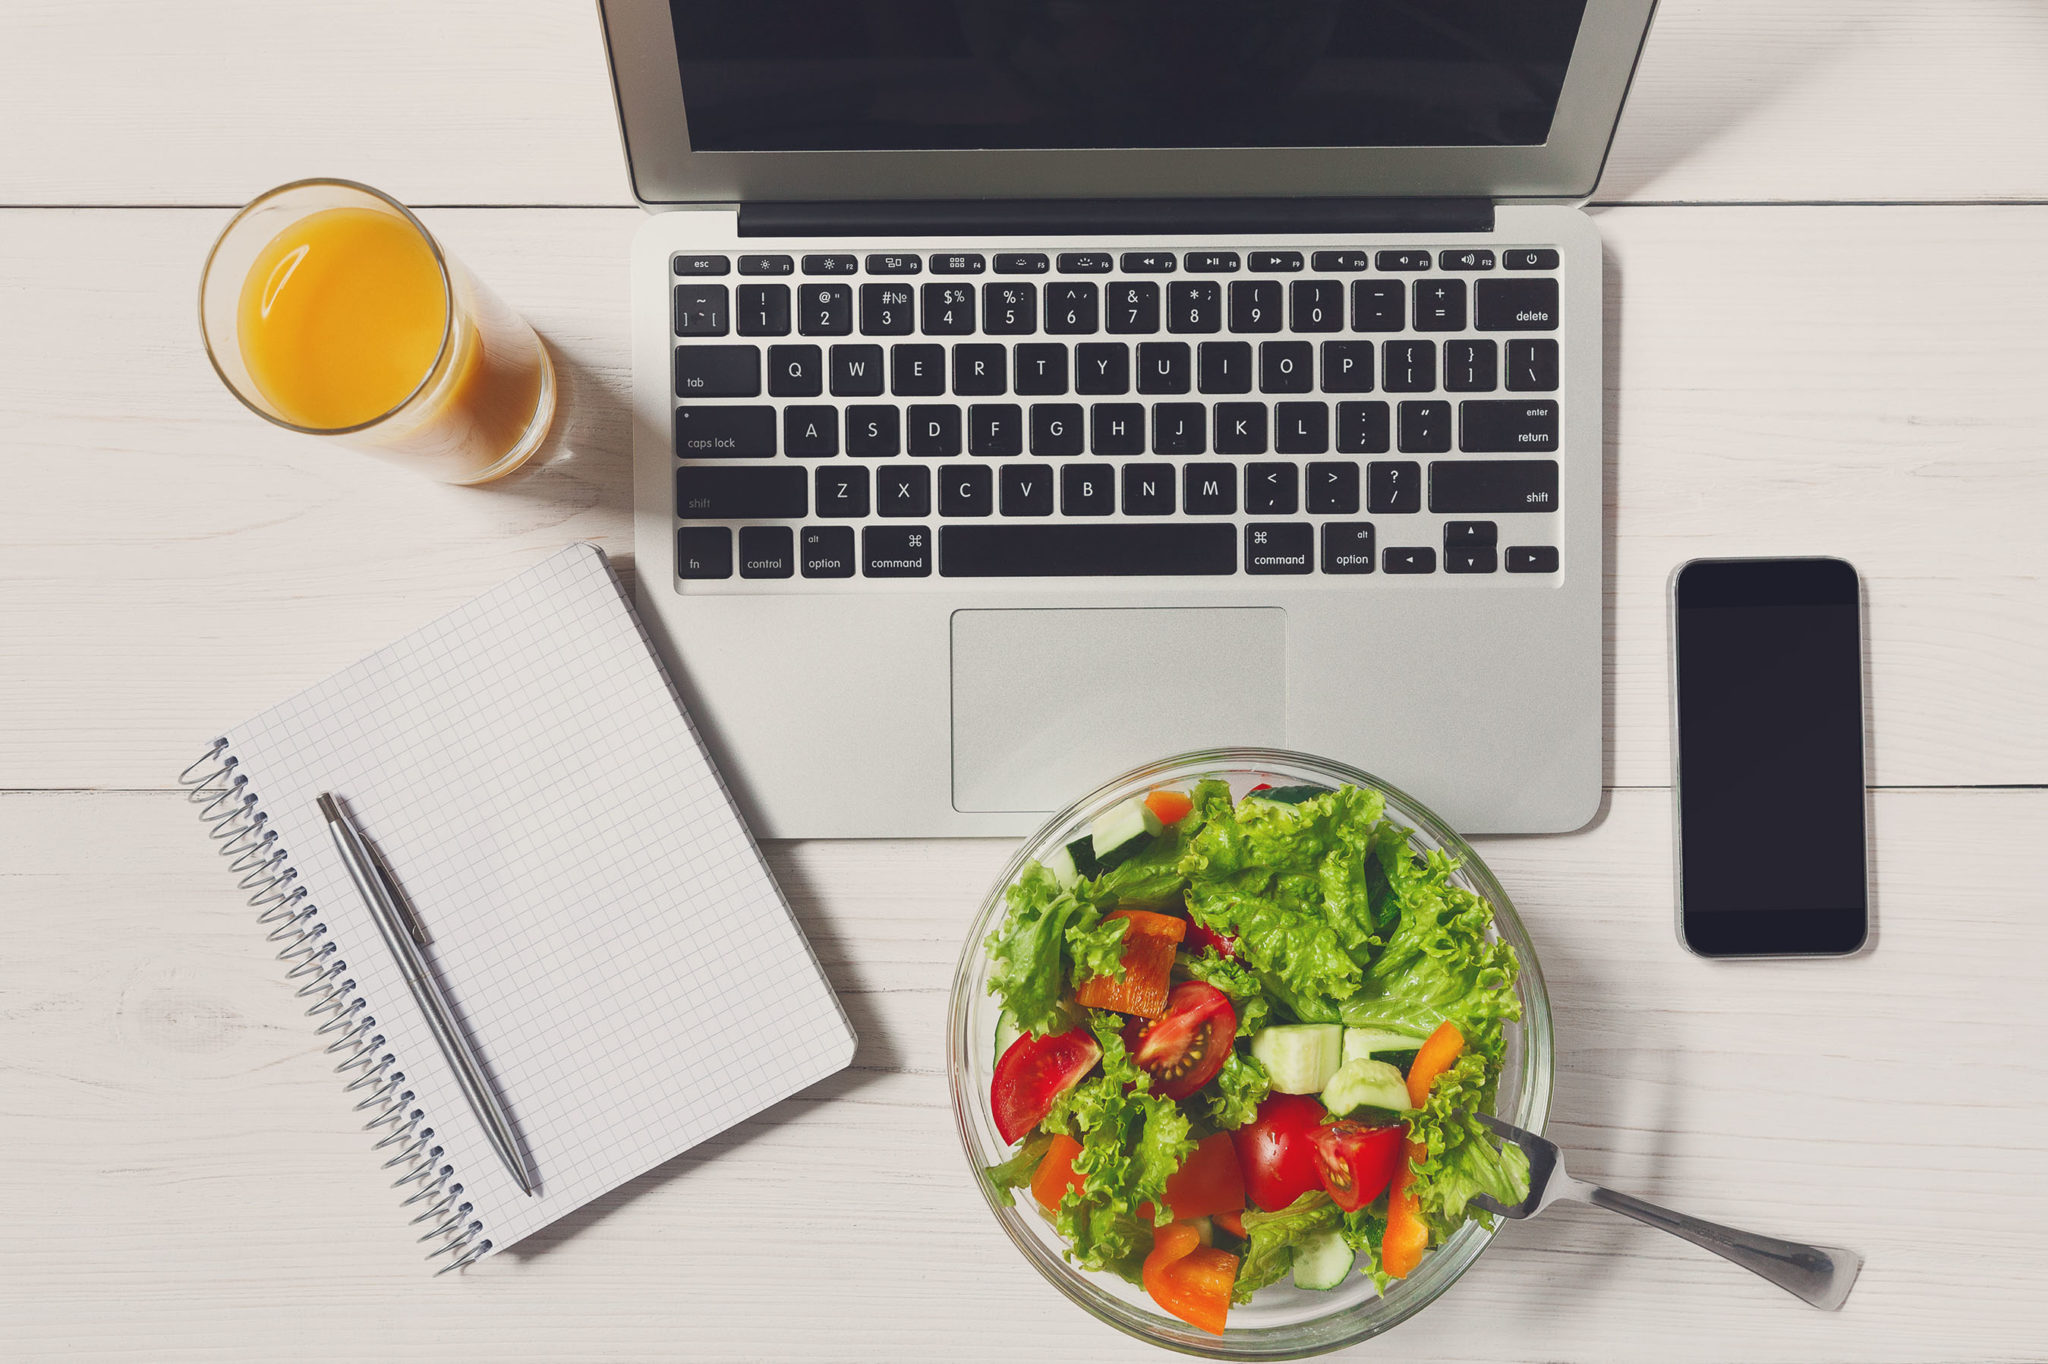 Healthy salad and juice next to a laptop and productivity tools